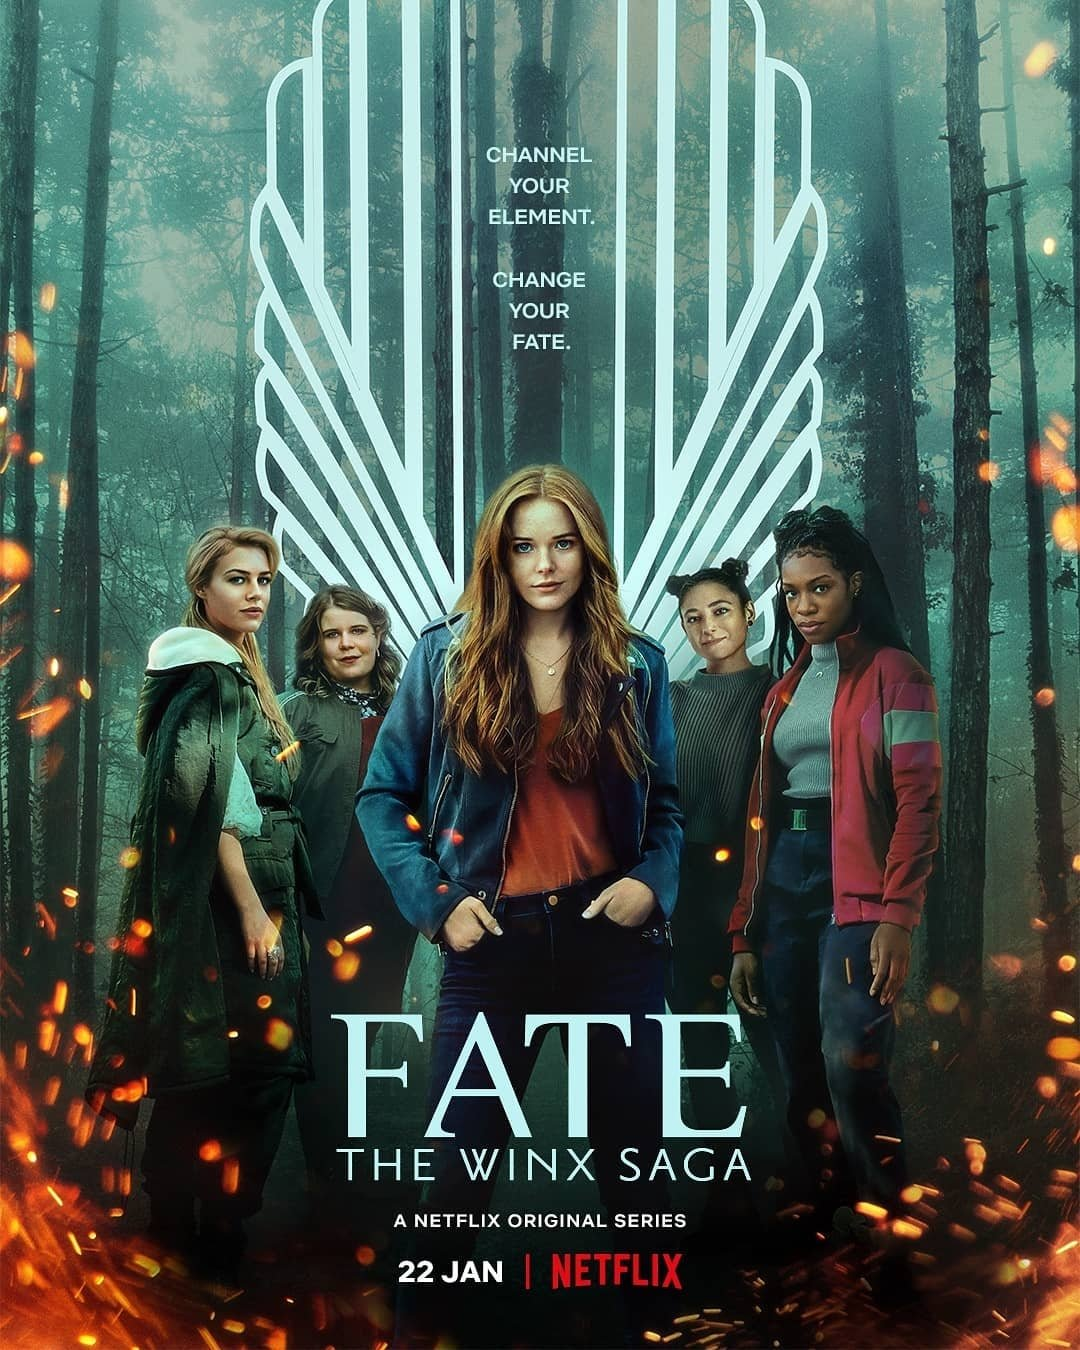 Fate The Winx Saga 2021 S01 Hindi Complete Netflix Web Series 950MB HDRip Download